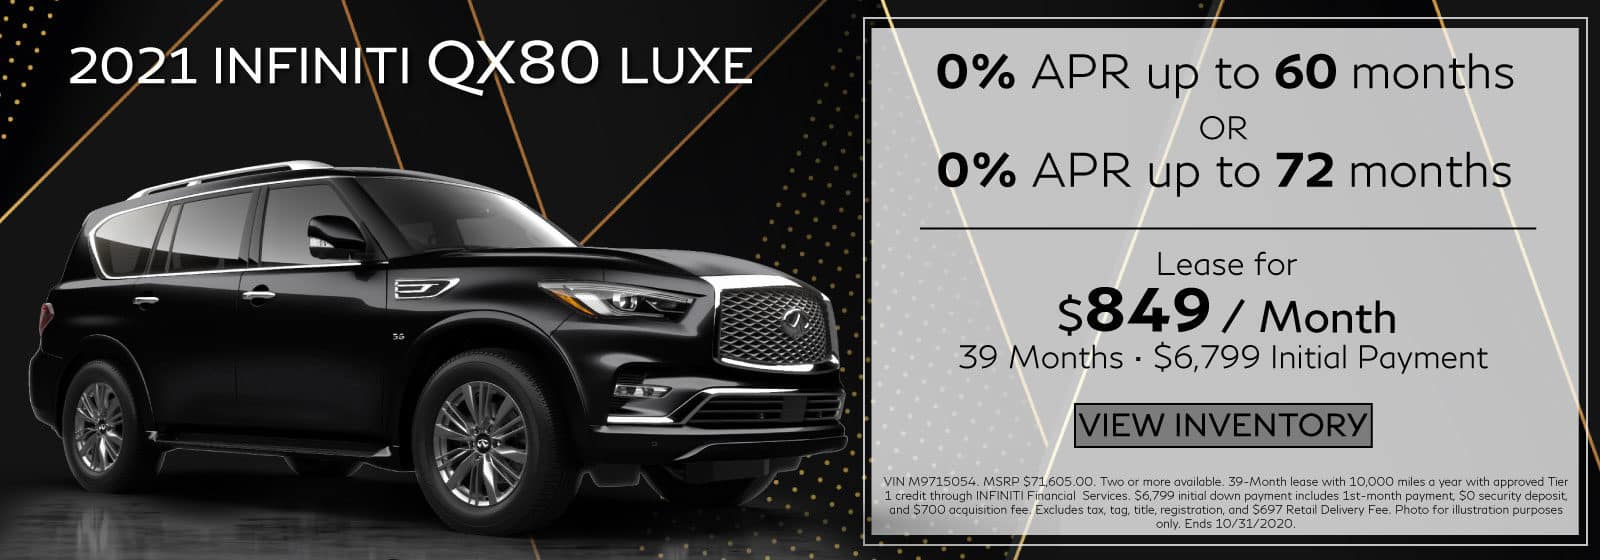 2020 QX80 LUXE RWD. Lease for $849 a month for 39 months. $6,799 initial payment. 0% APR up to 60 Months OR 0% APR for 72 months. Black QX80 on black abstract background. View Inventory button.